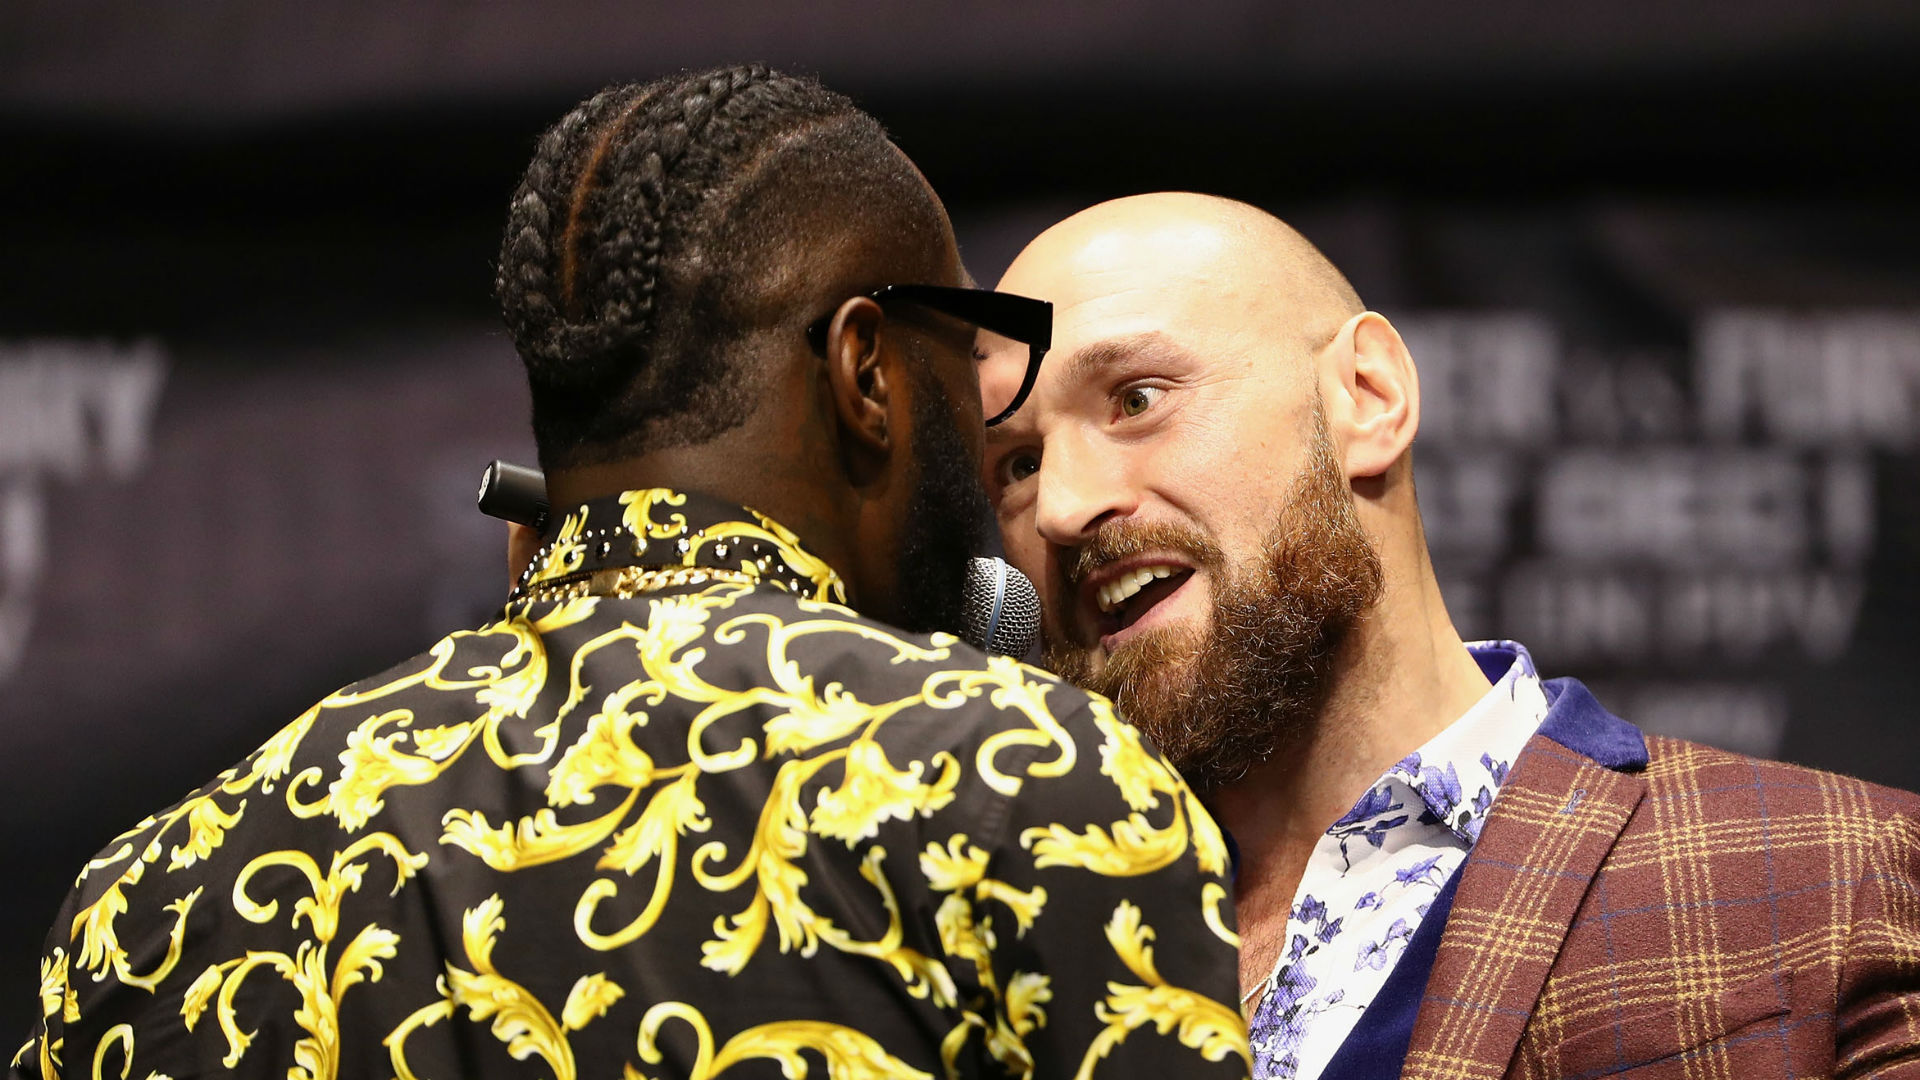 A scuffle broke out after Deontay Wilder had poked Tyson Fury in the face in their final news conference before their heavyweight bout.